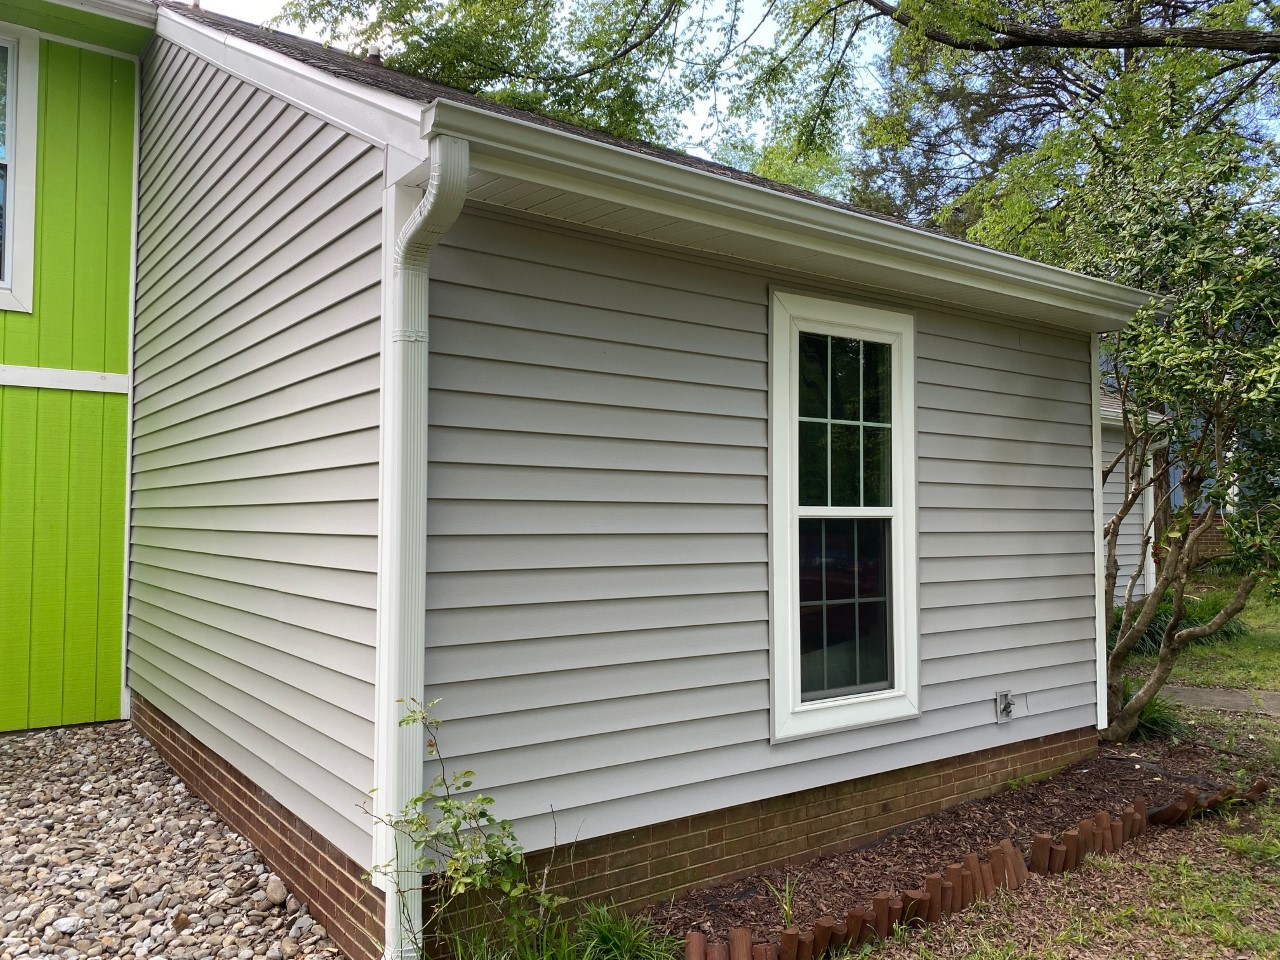 South Charlotte Duplex Features New Mastic Vinyl Siding, Improving Curb Appeal and Durability